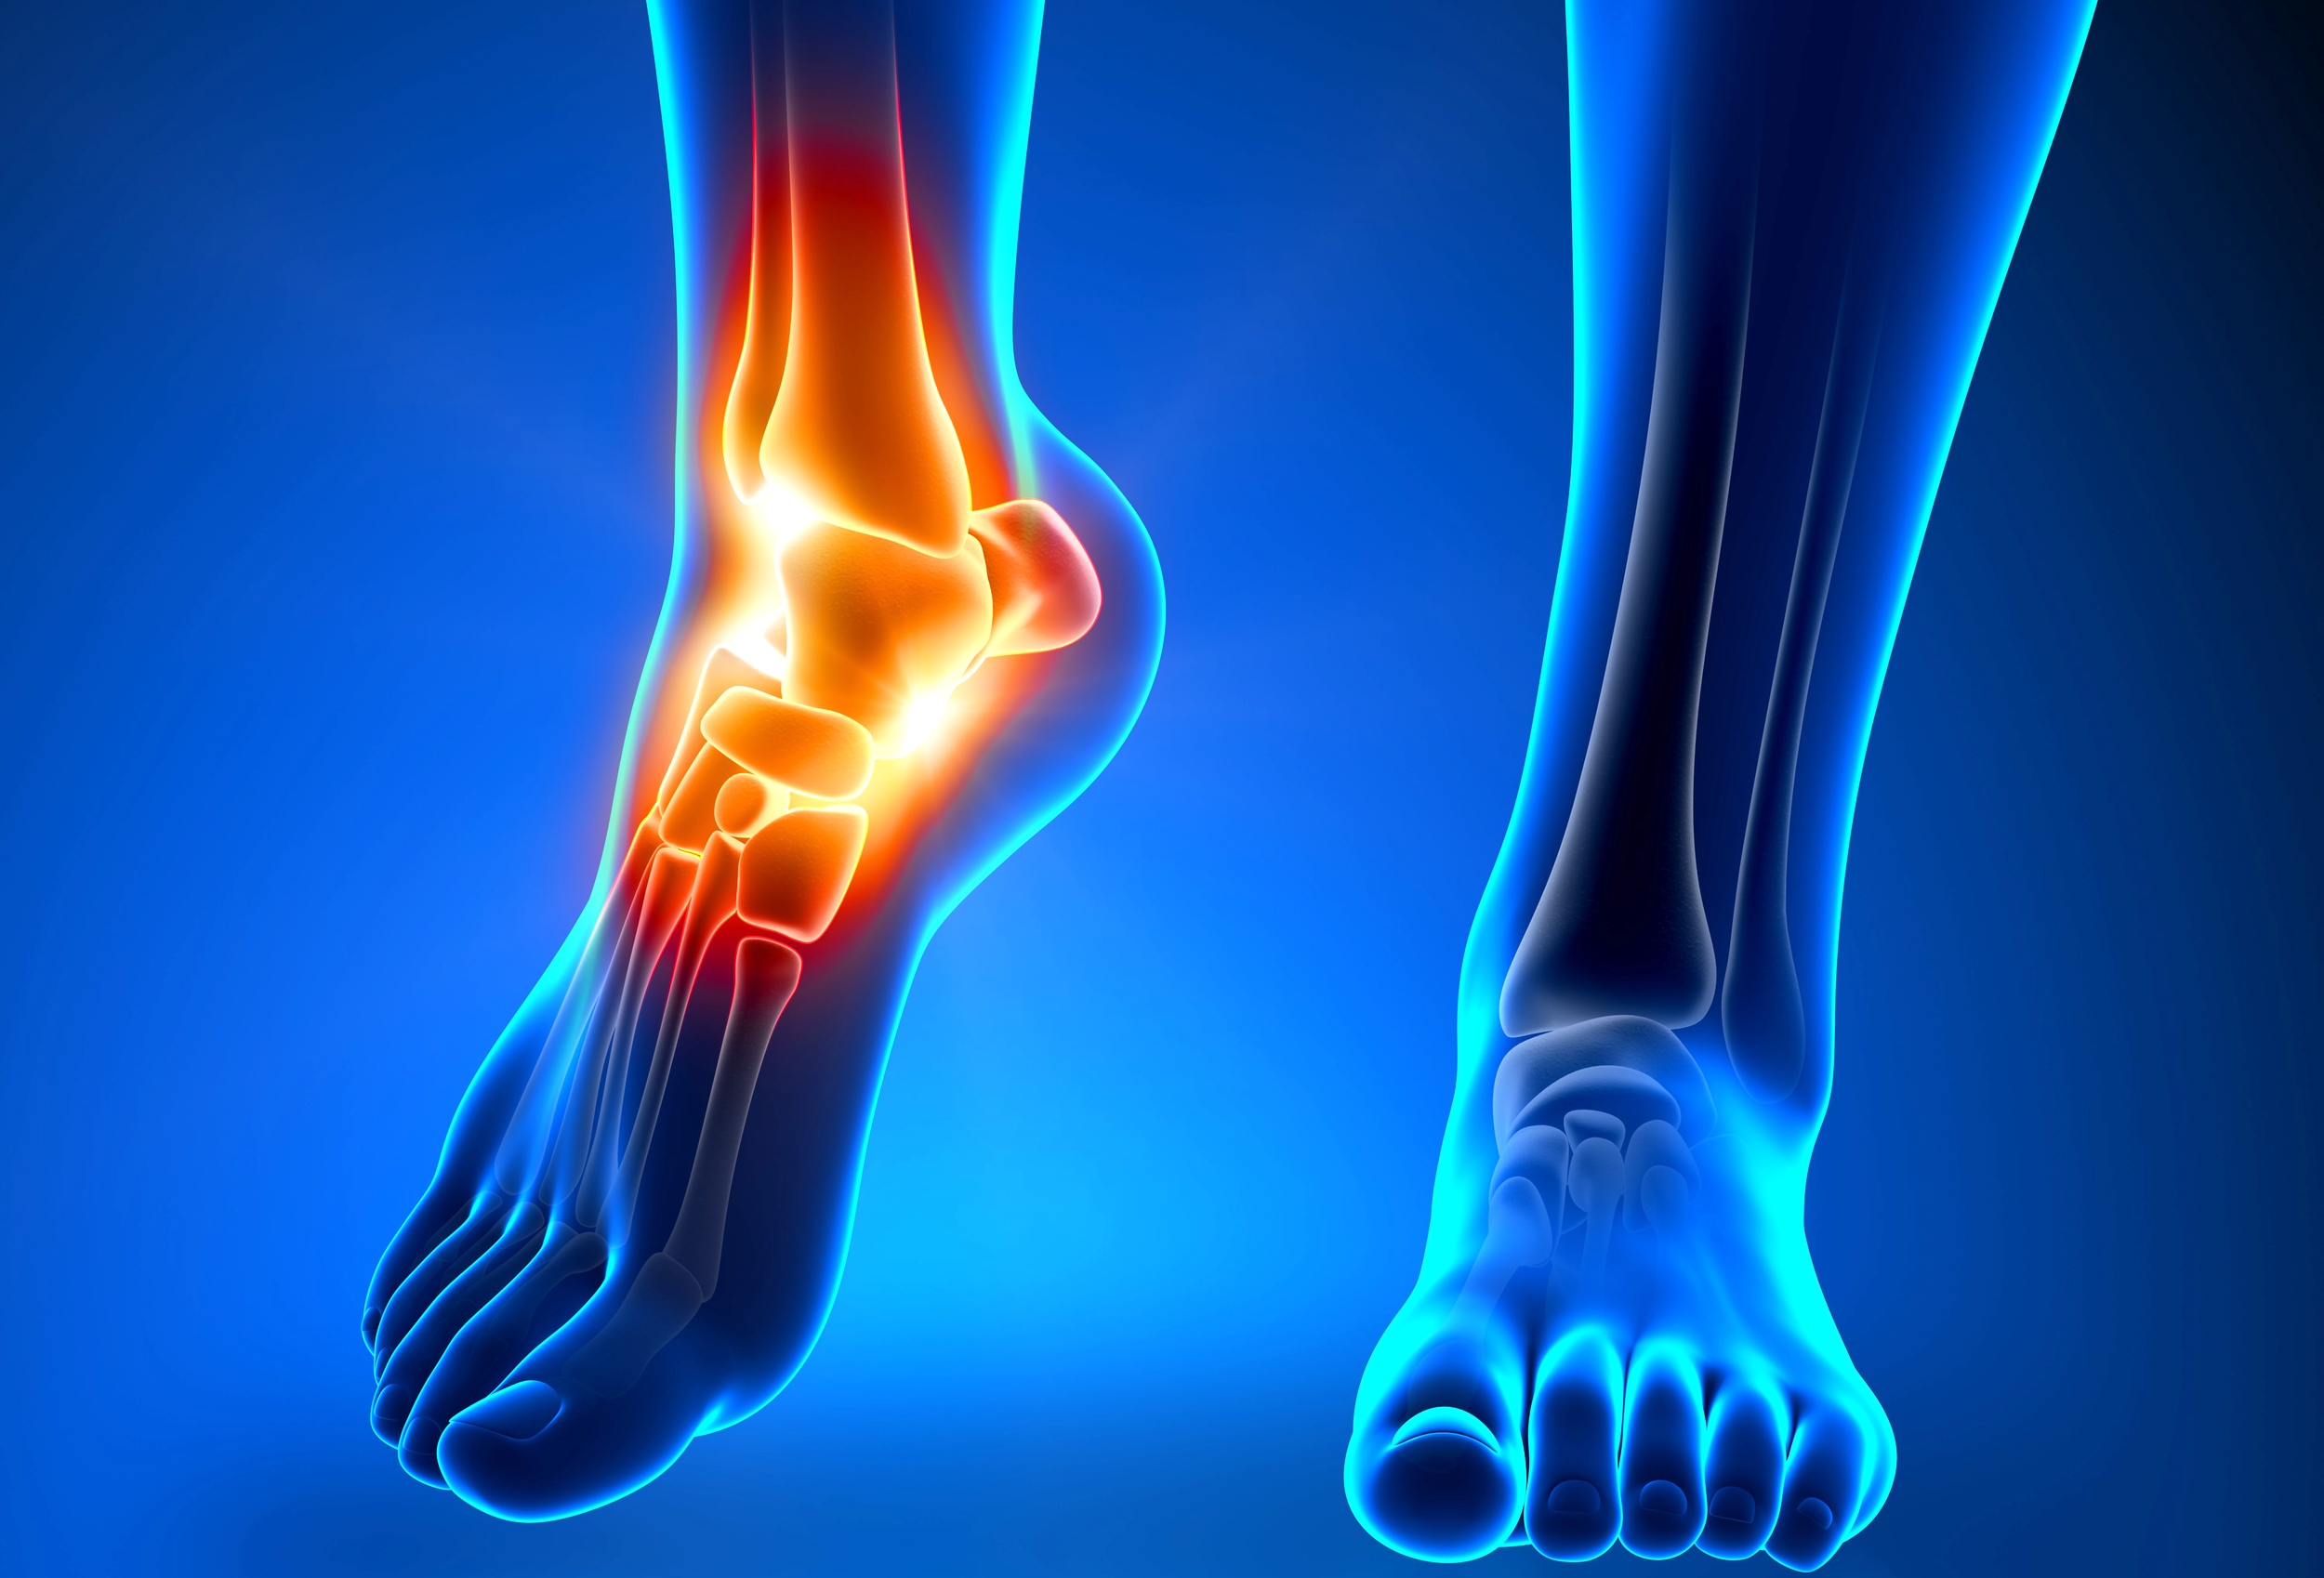 Ankle Image.png